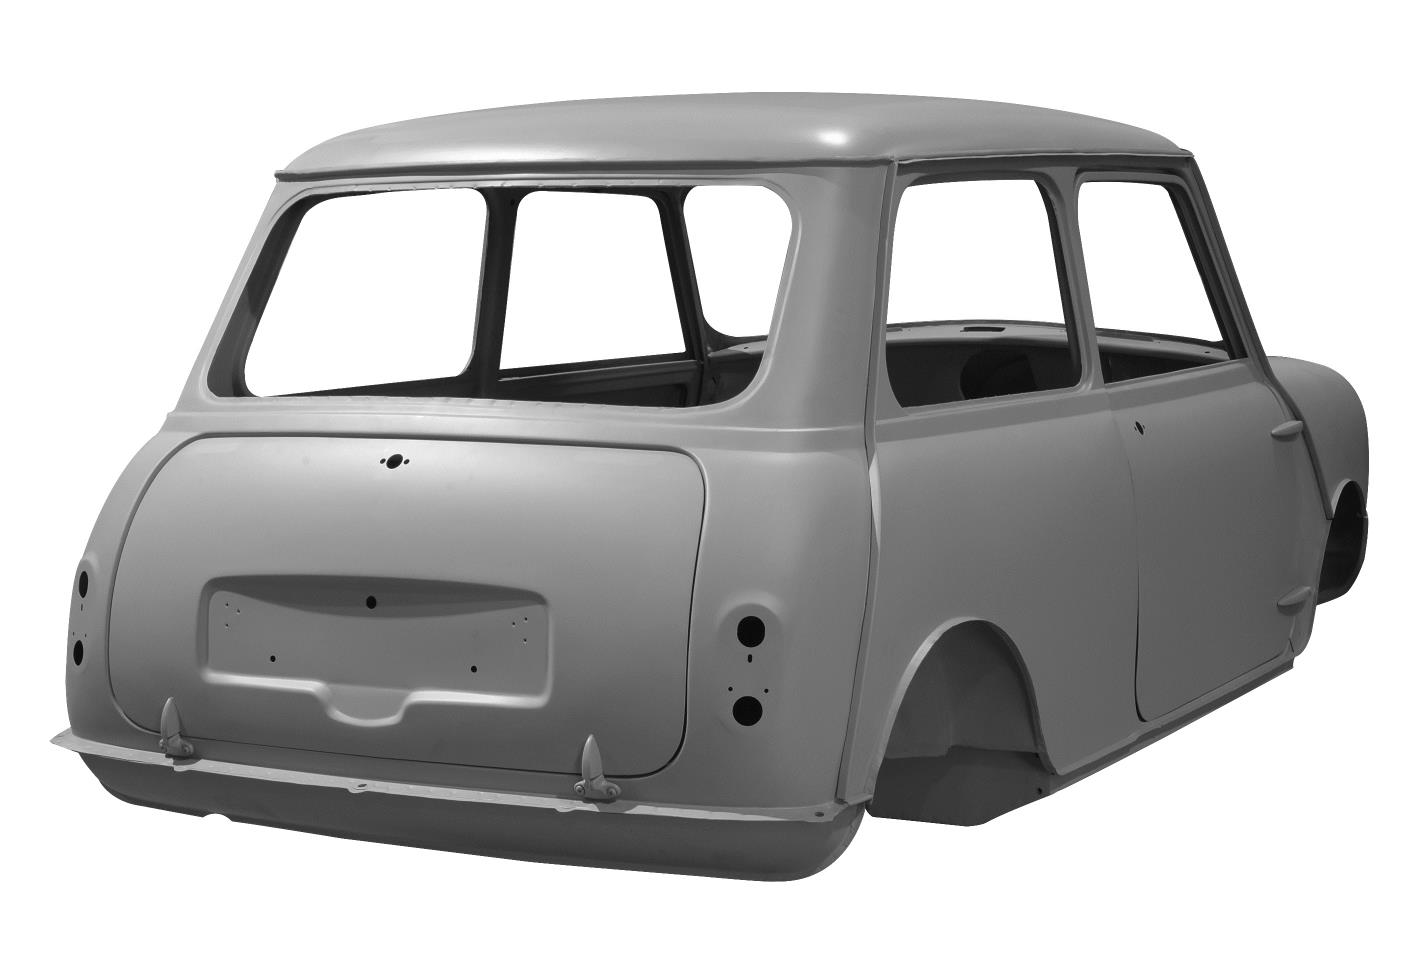 Classic Mini Cooper Body Shells Being Reproduced For Fans